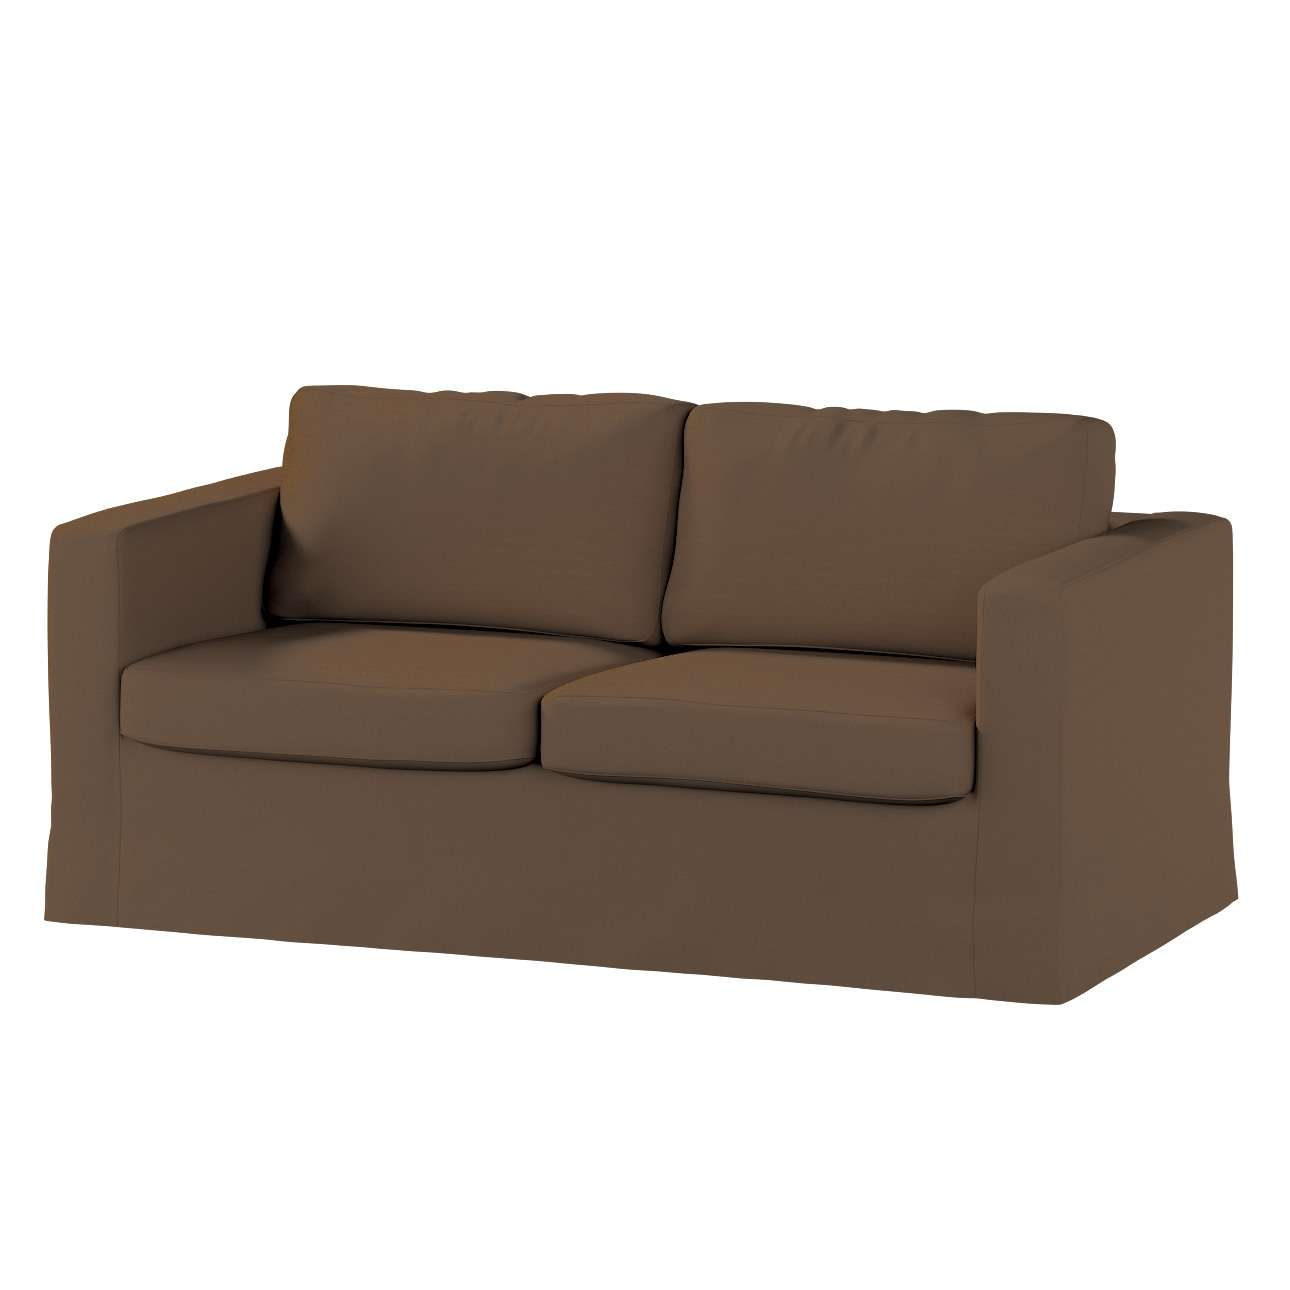 Floor length Karlstad 2-seater sofa cover in collection Panama Cotton, fabric: 702-02